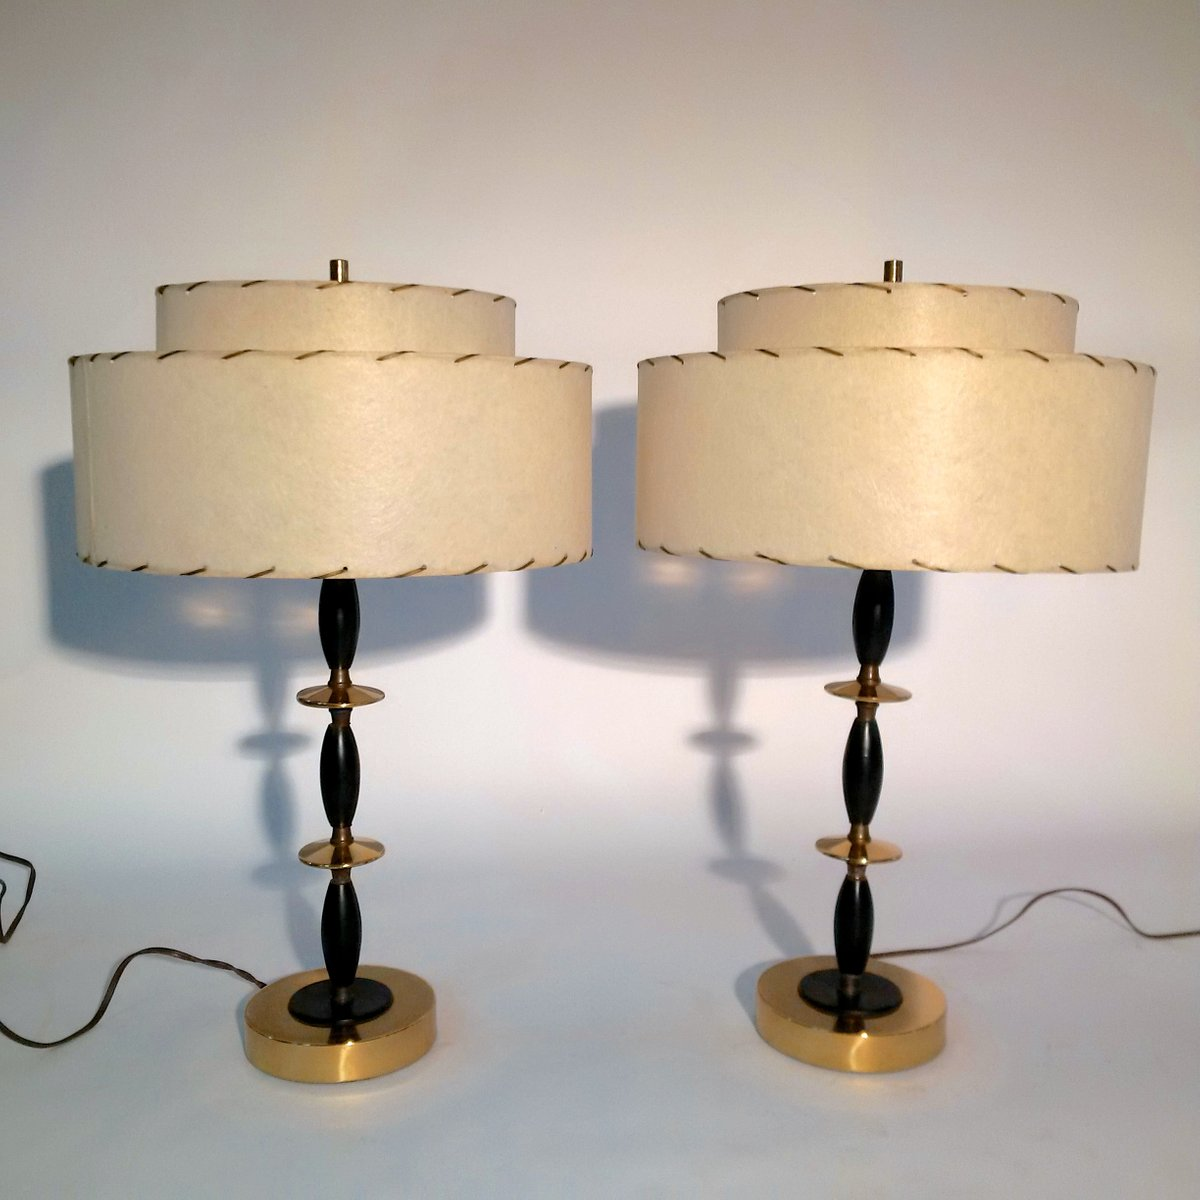 Mid century modern atomic table lamps 1950s set of 2 for for Z gallerie century table lamp